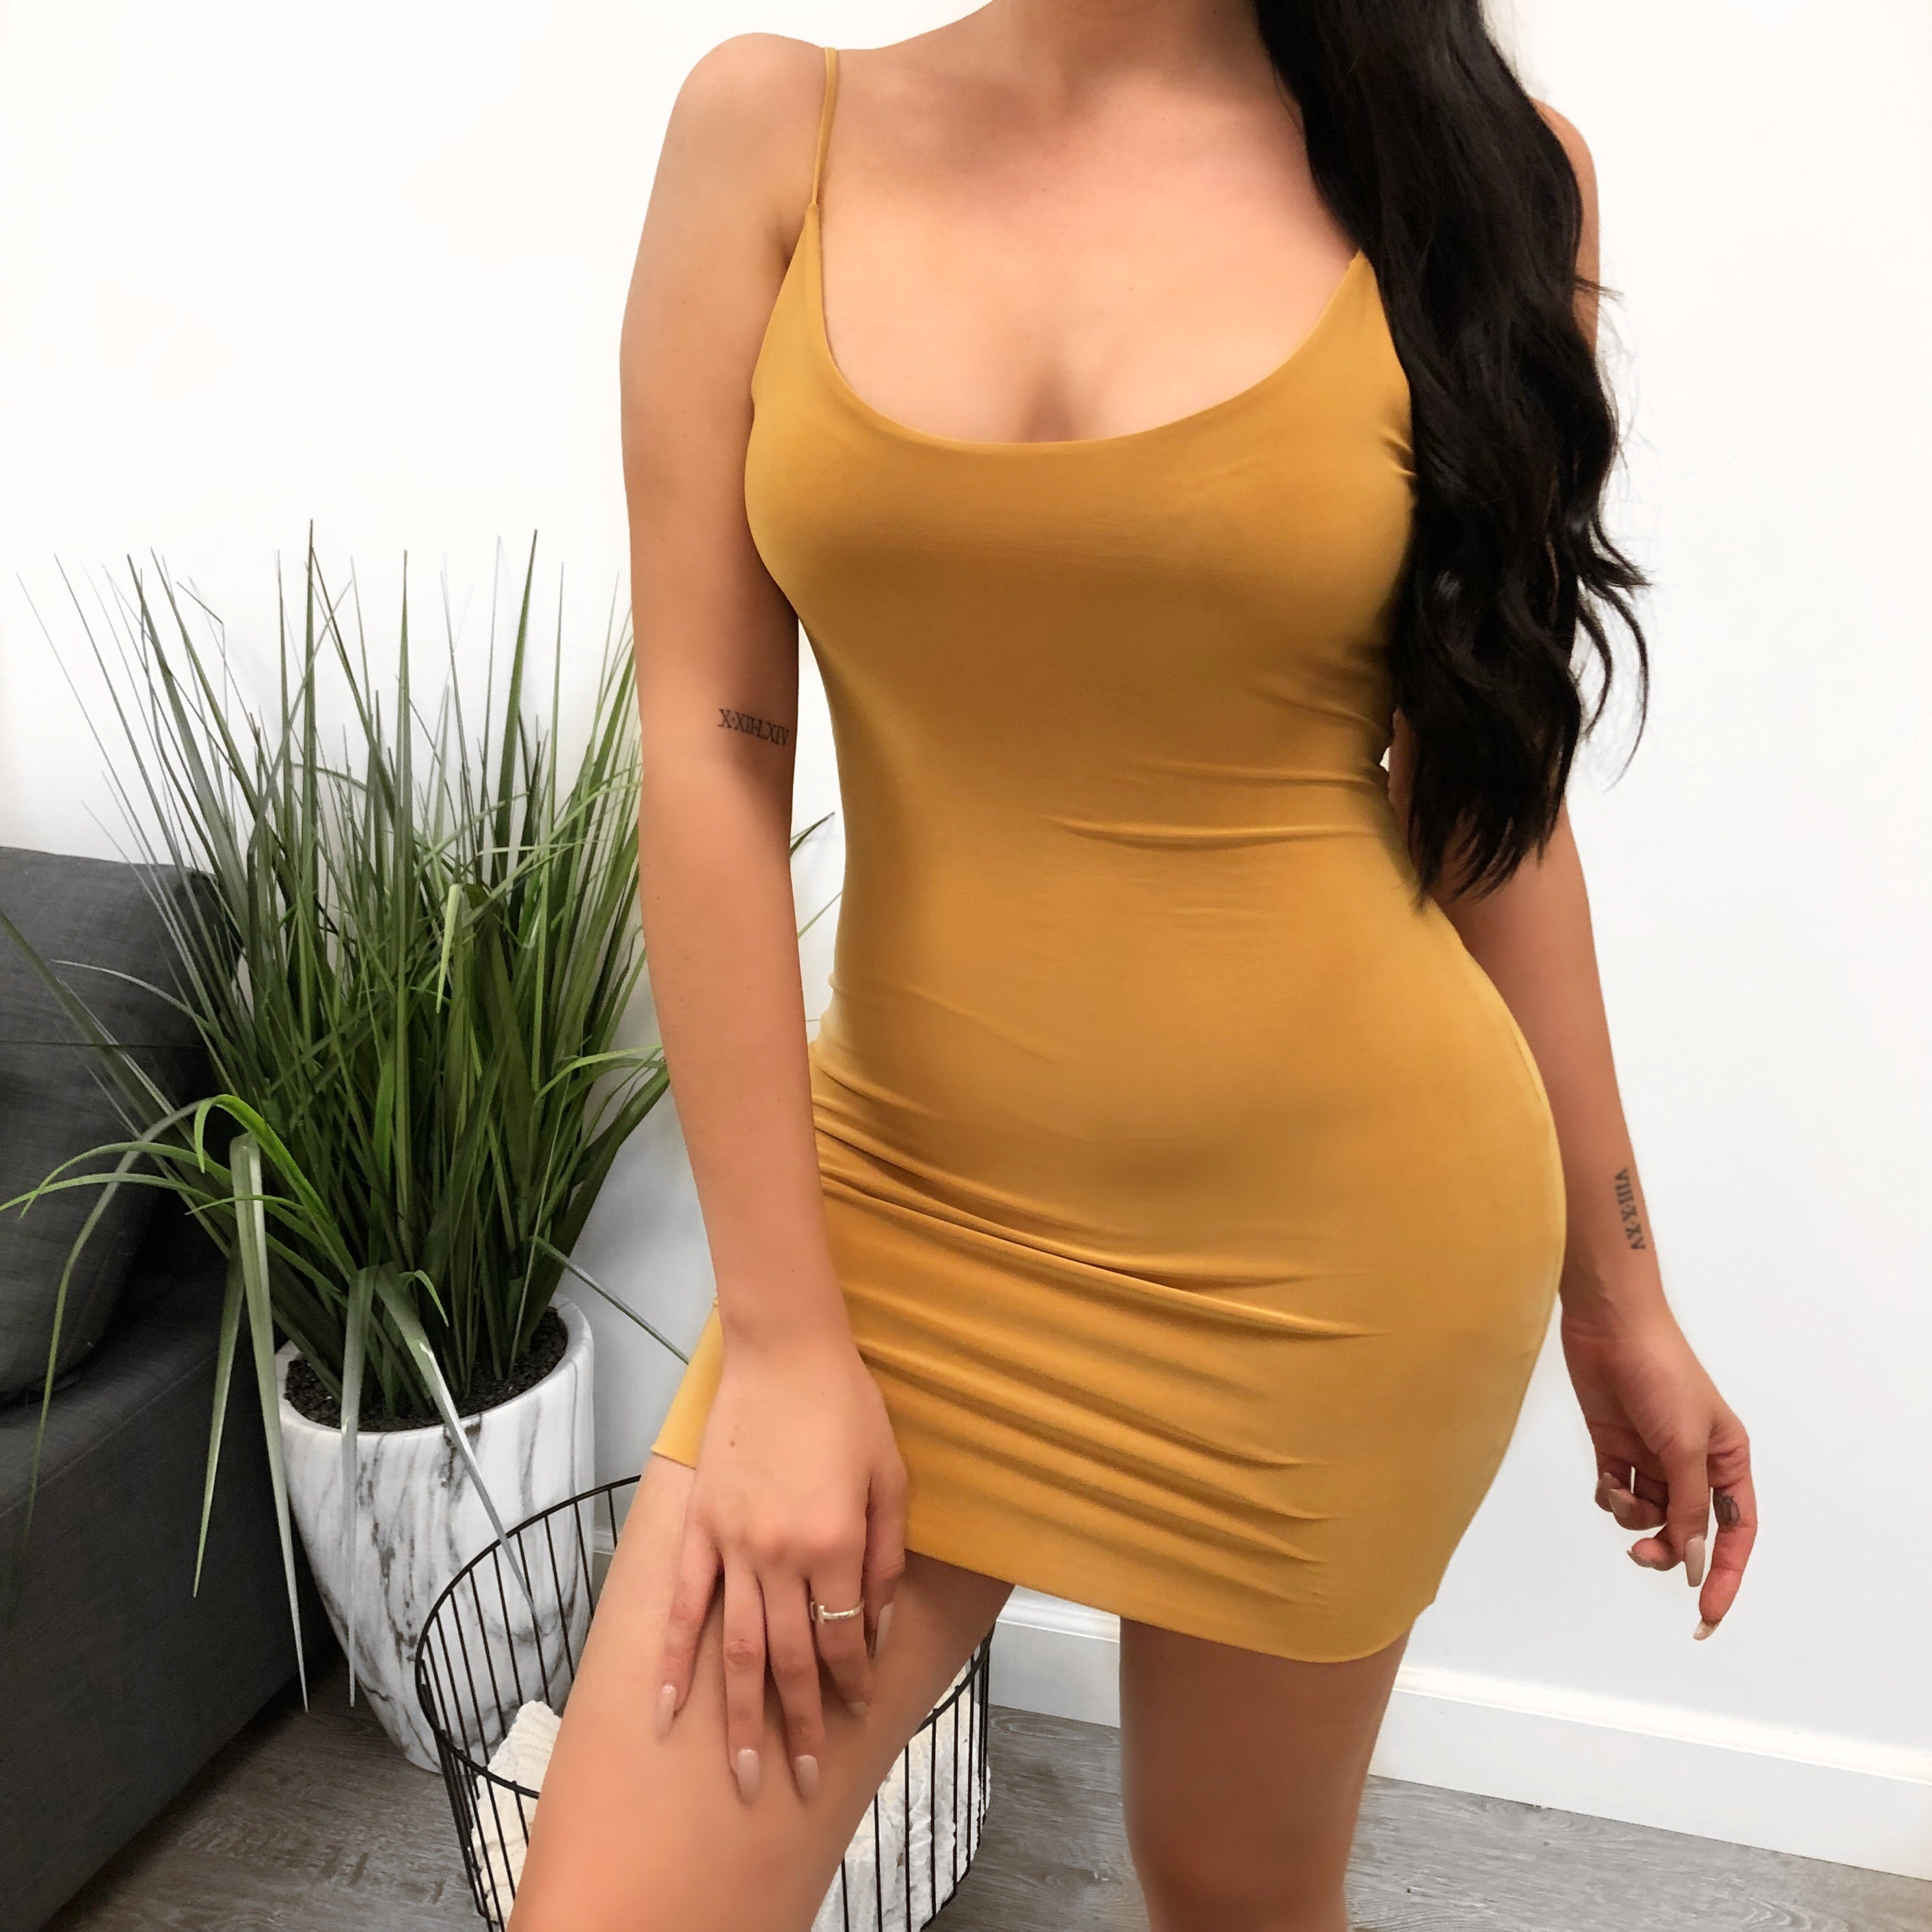 mustard color dress with spaghetti straps. wide u shape with mid cleavage visibility. dress length is mid thigh.  back of dress has a wide u shape as well to mid back.